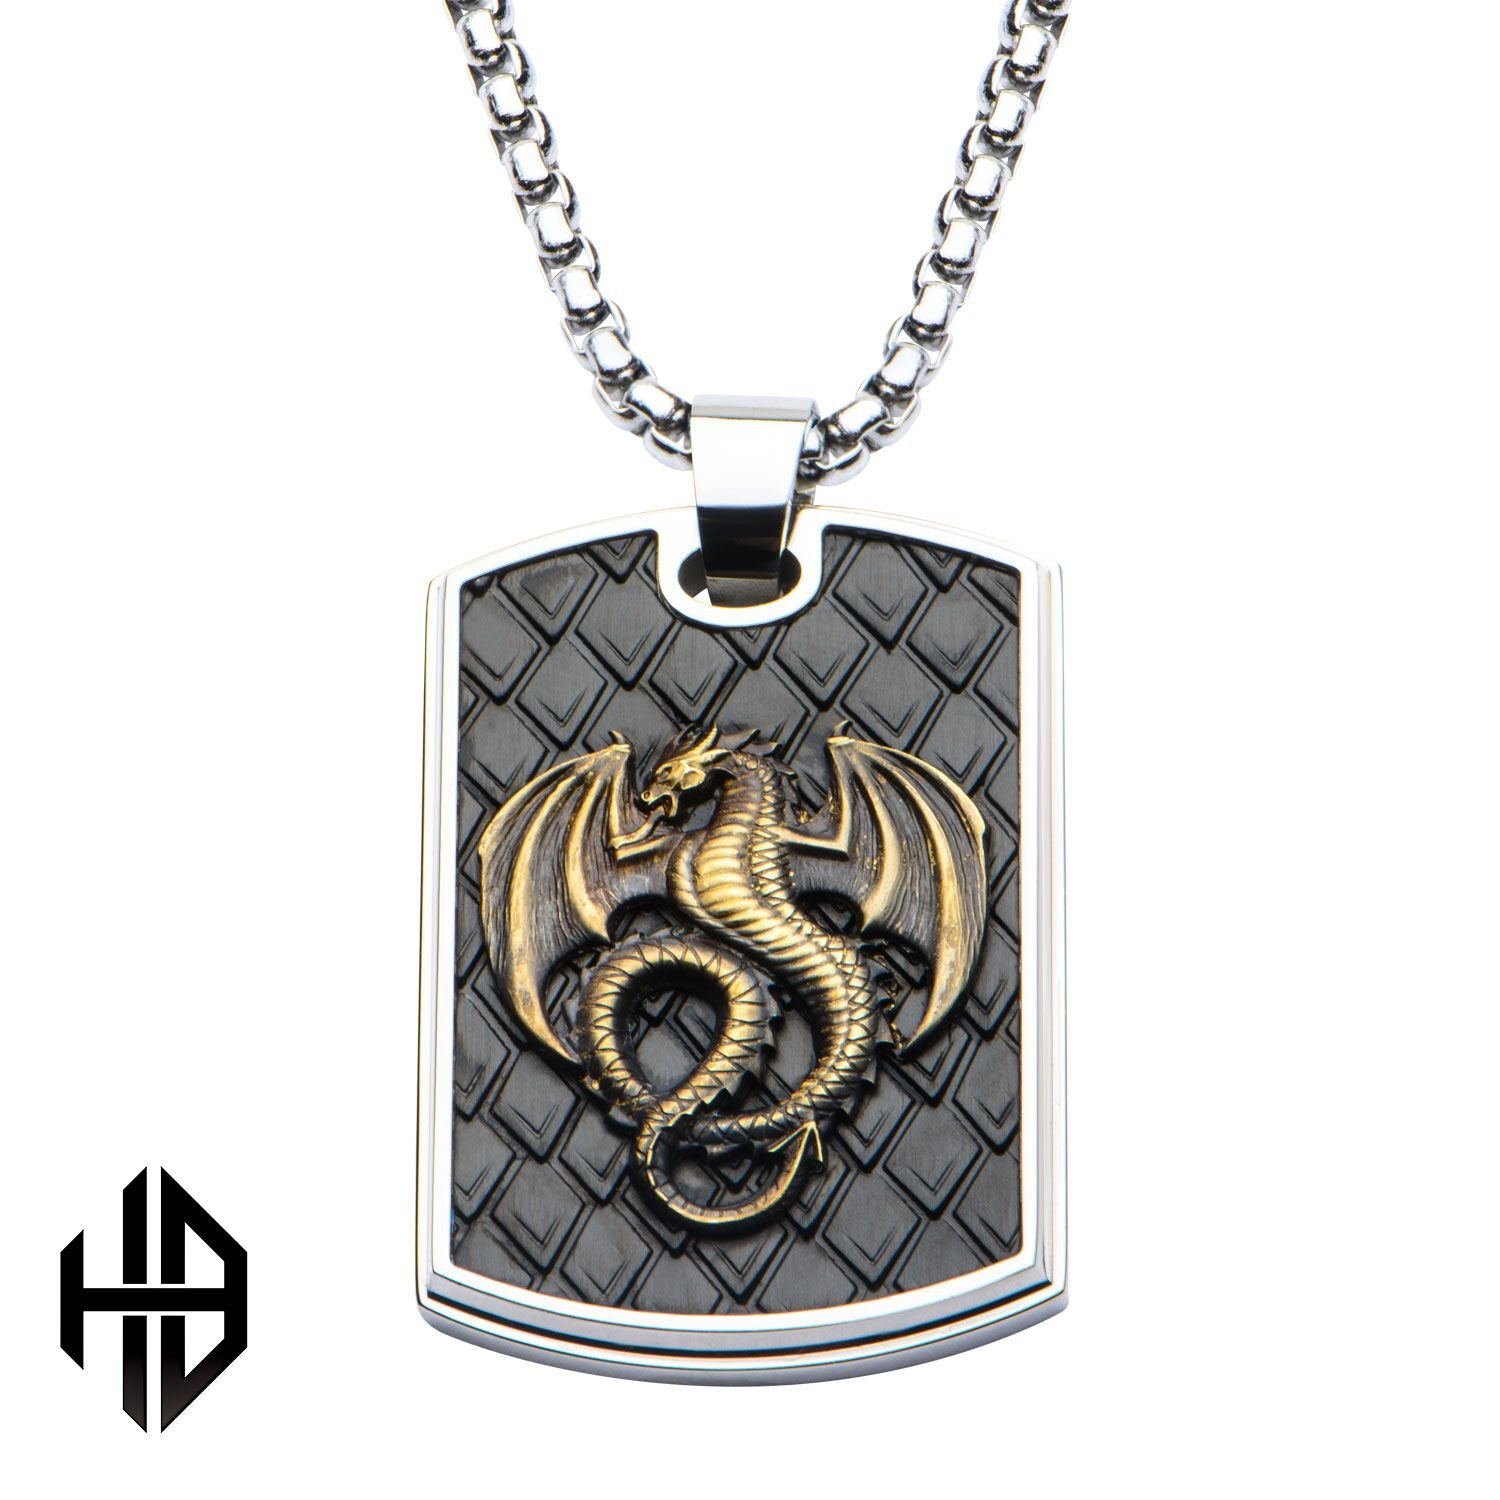 Hollis Bahringer Mens Antique Stamped Brass Dragon Stainless Steel Polished Dog Tag Pendant with Chain